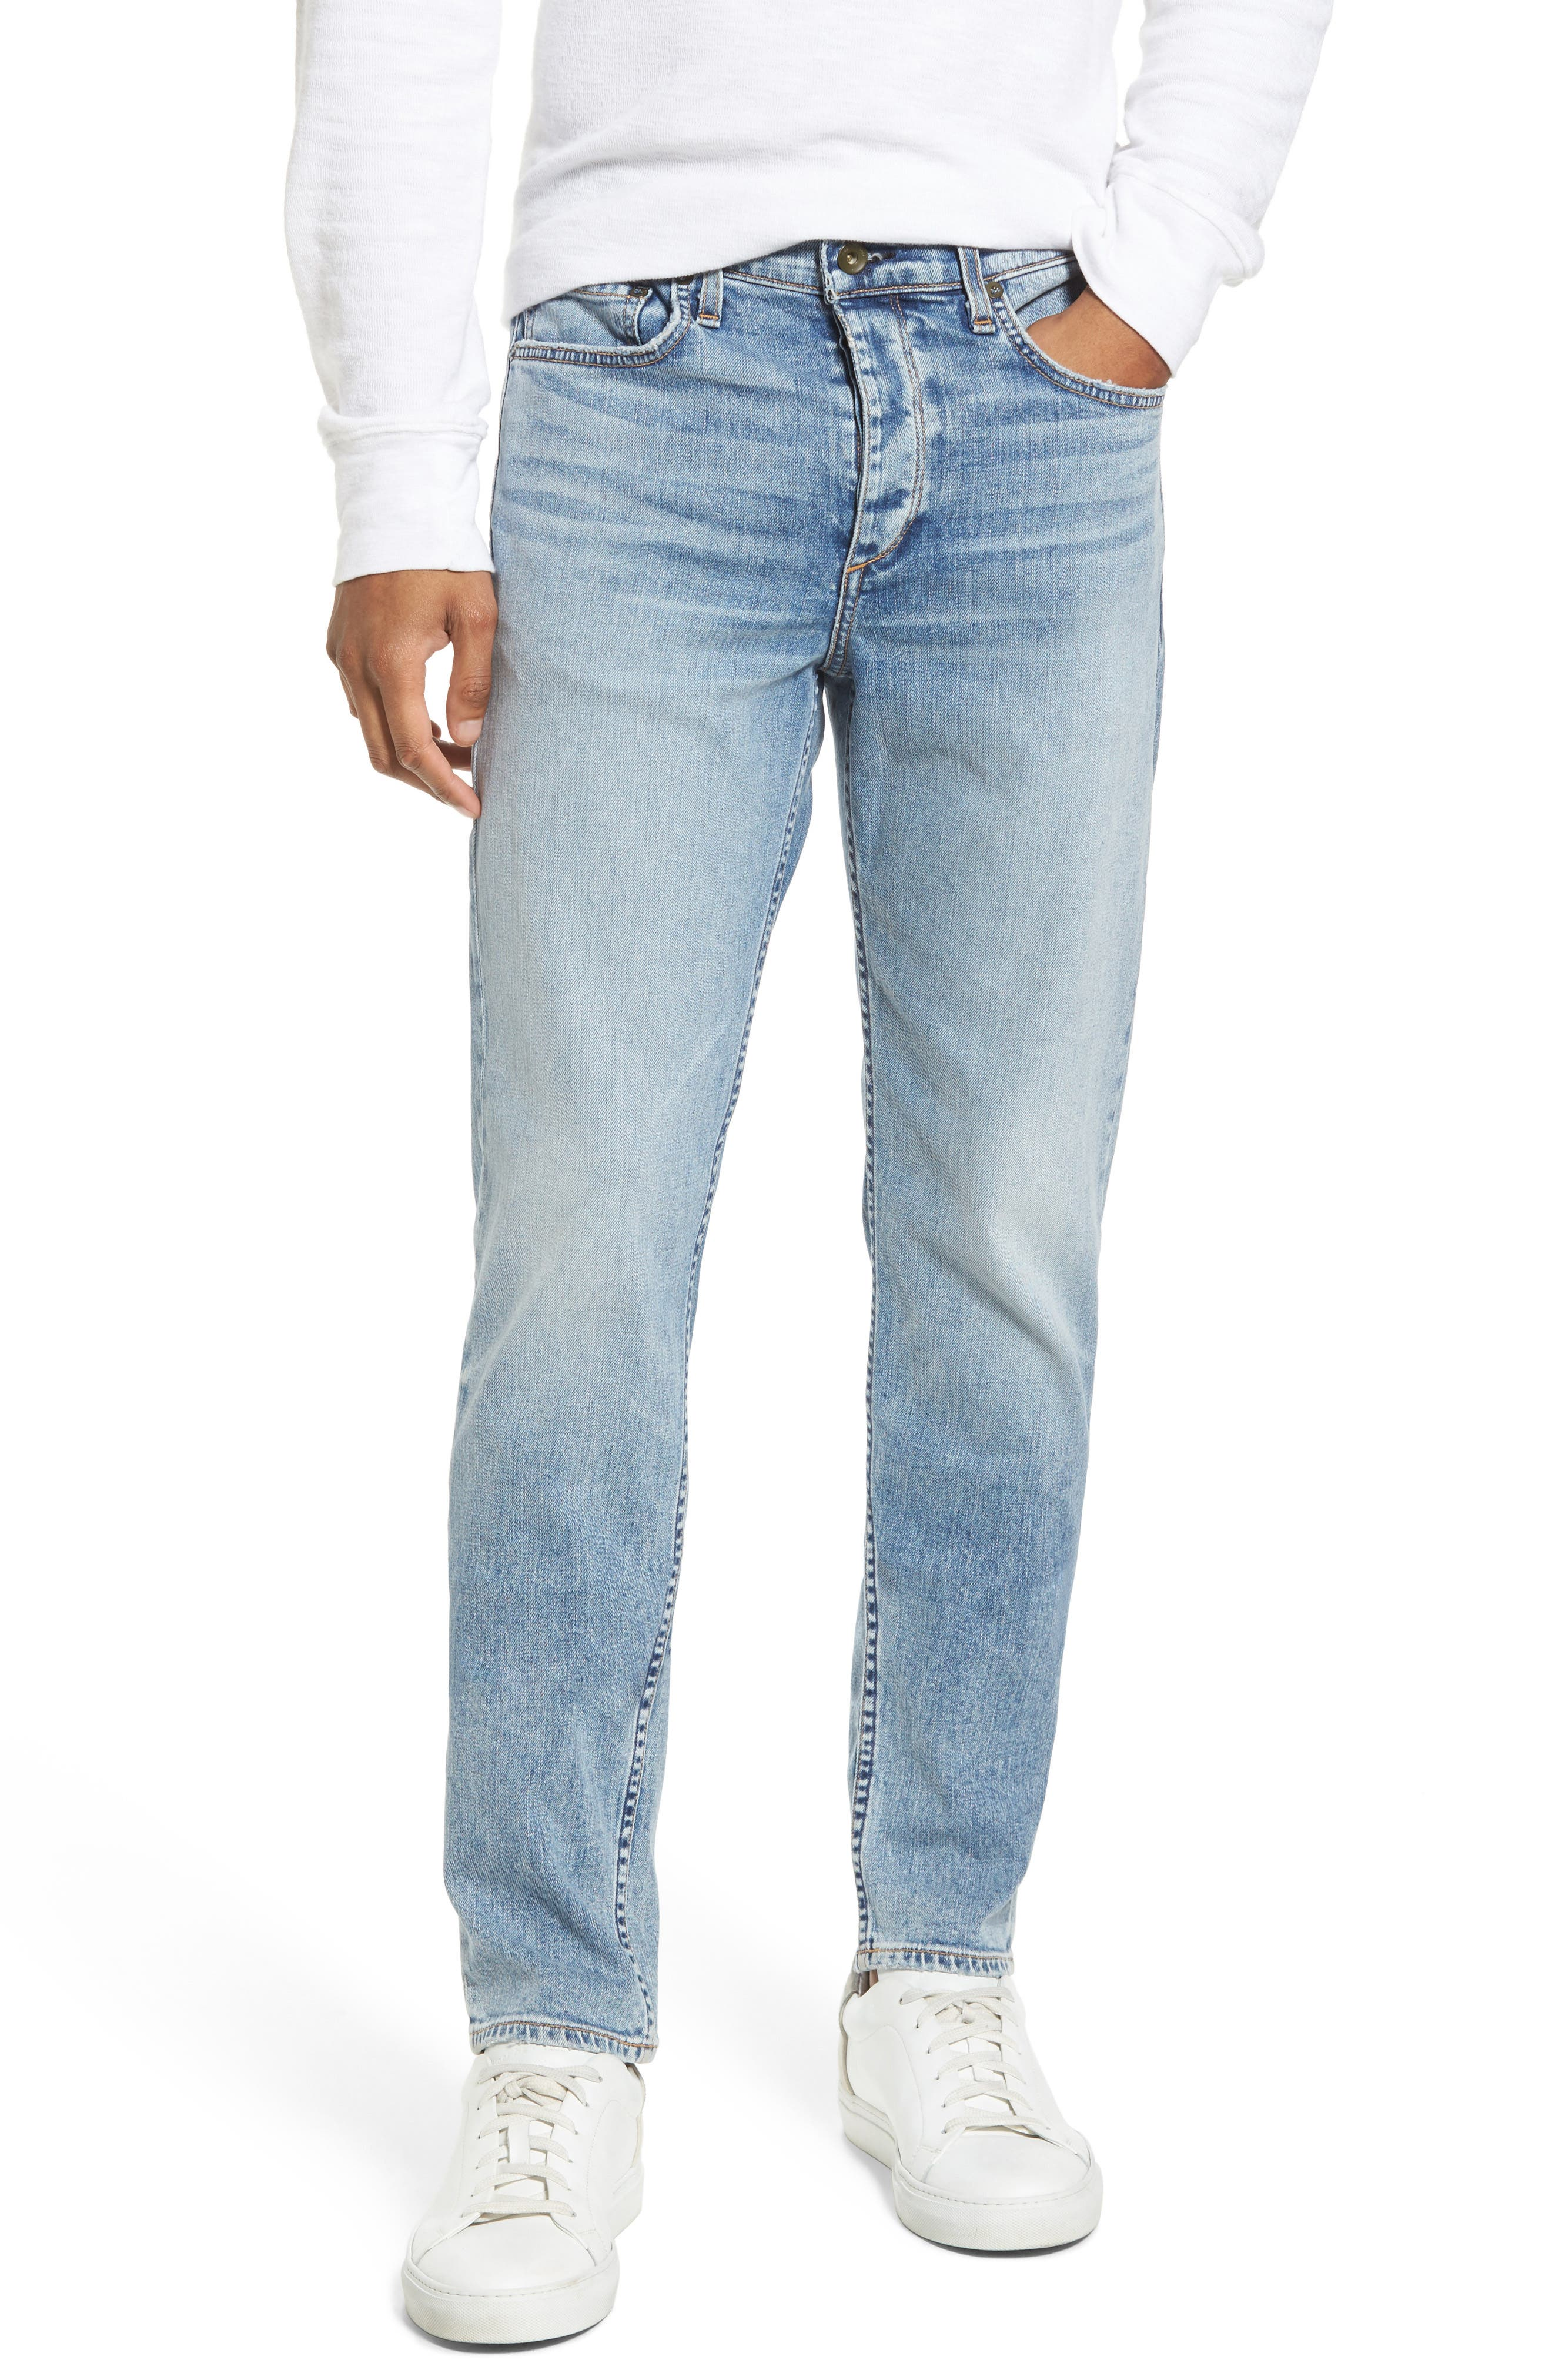 Fit 1 Skinny Fit Jeans,                         Main,                         color, Double Up